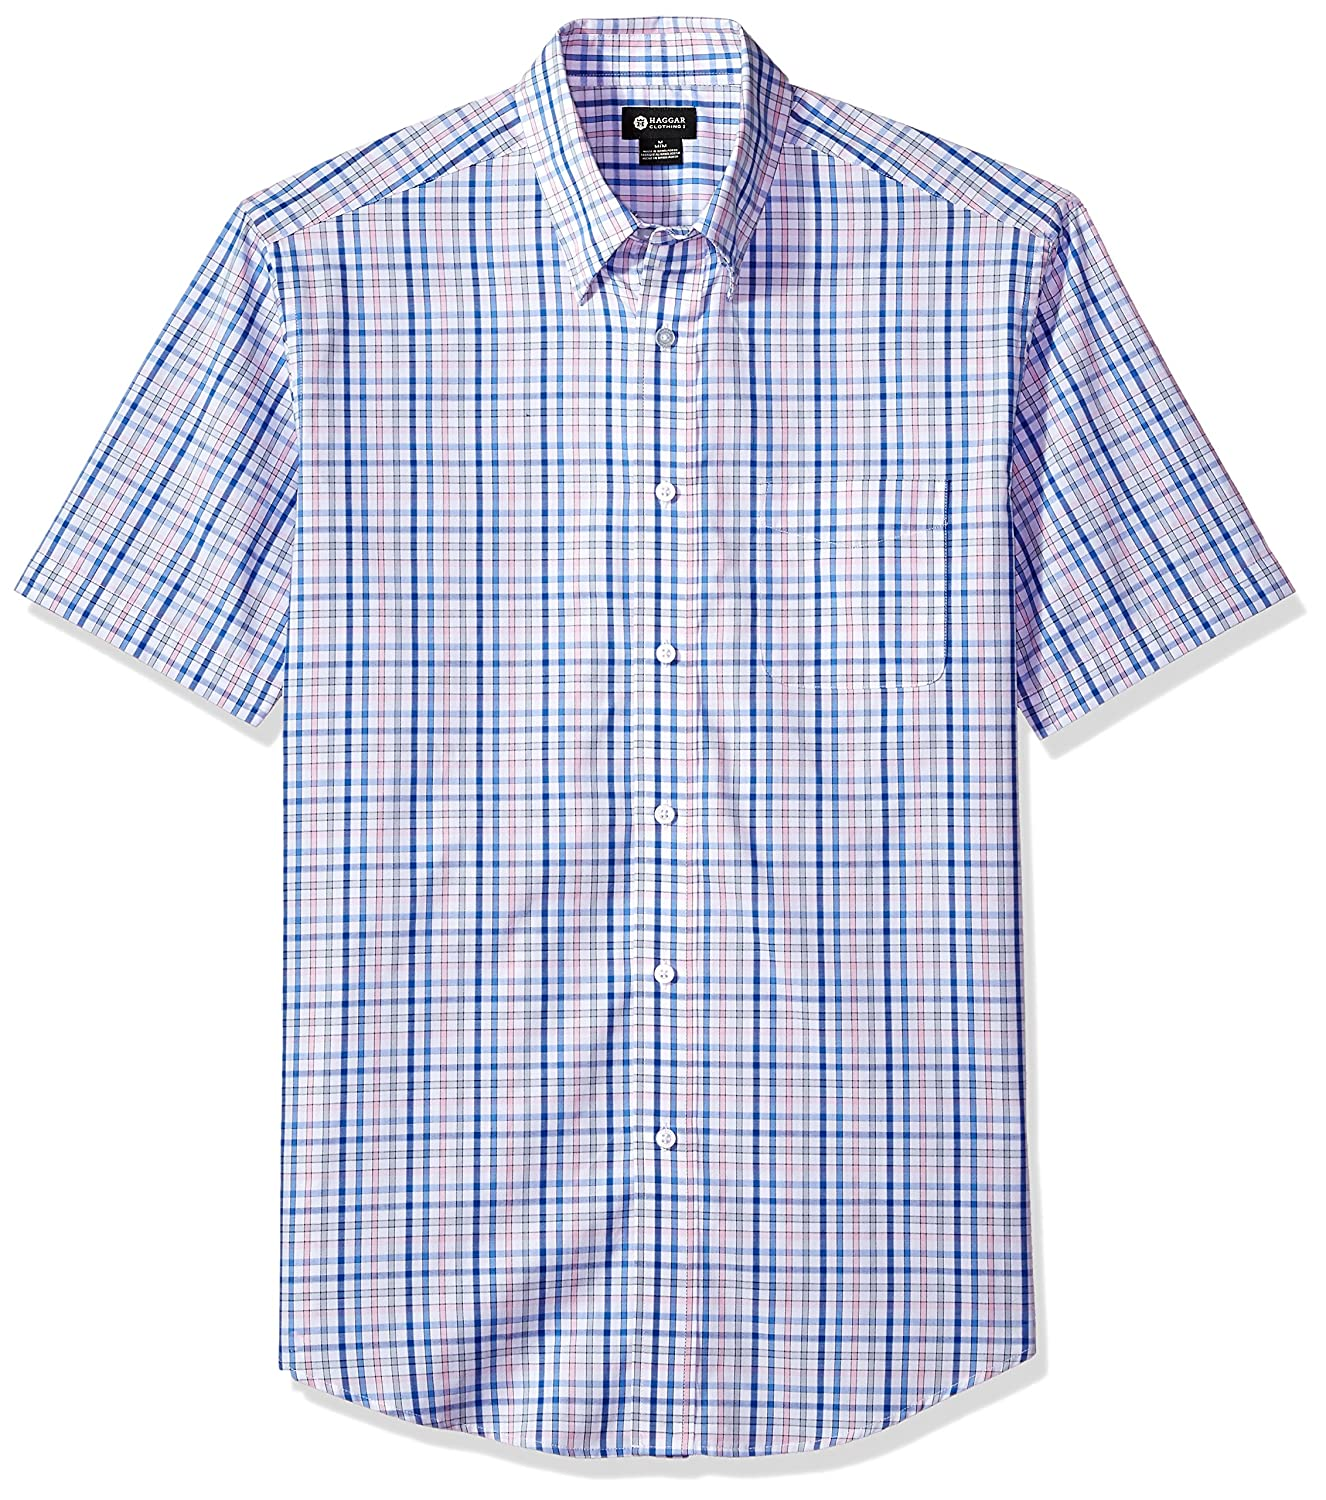 Haggar Men's Short Sleeve Multi Plaid Shirt IWM286